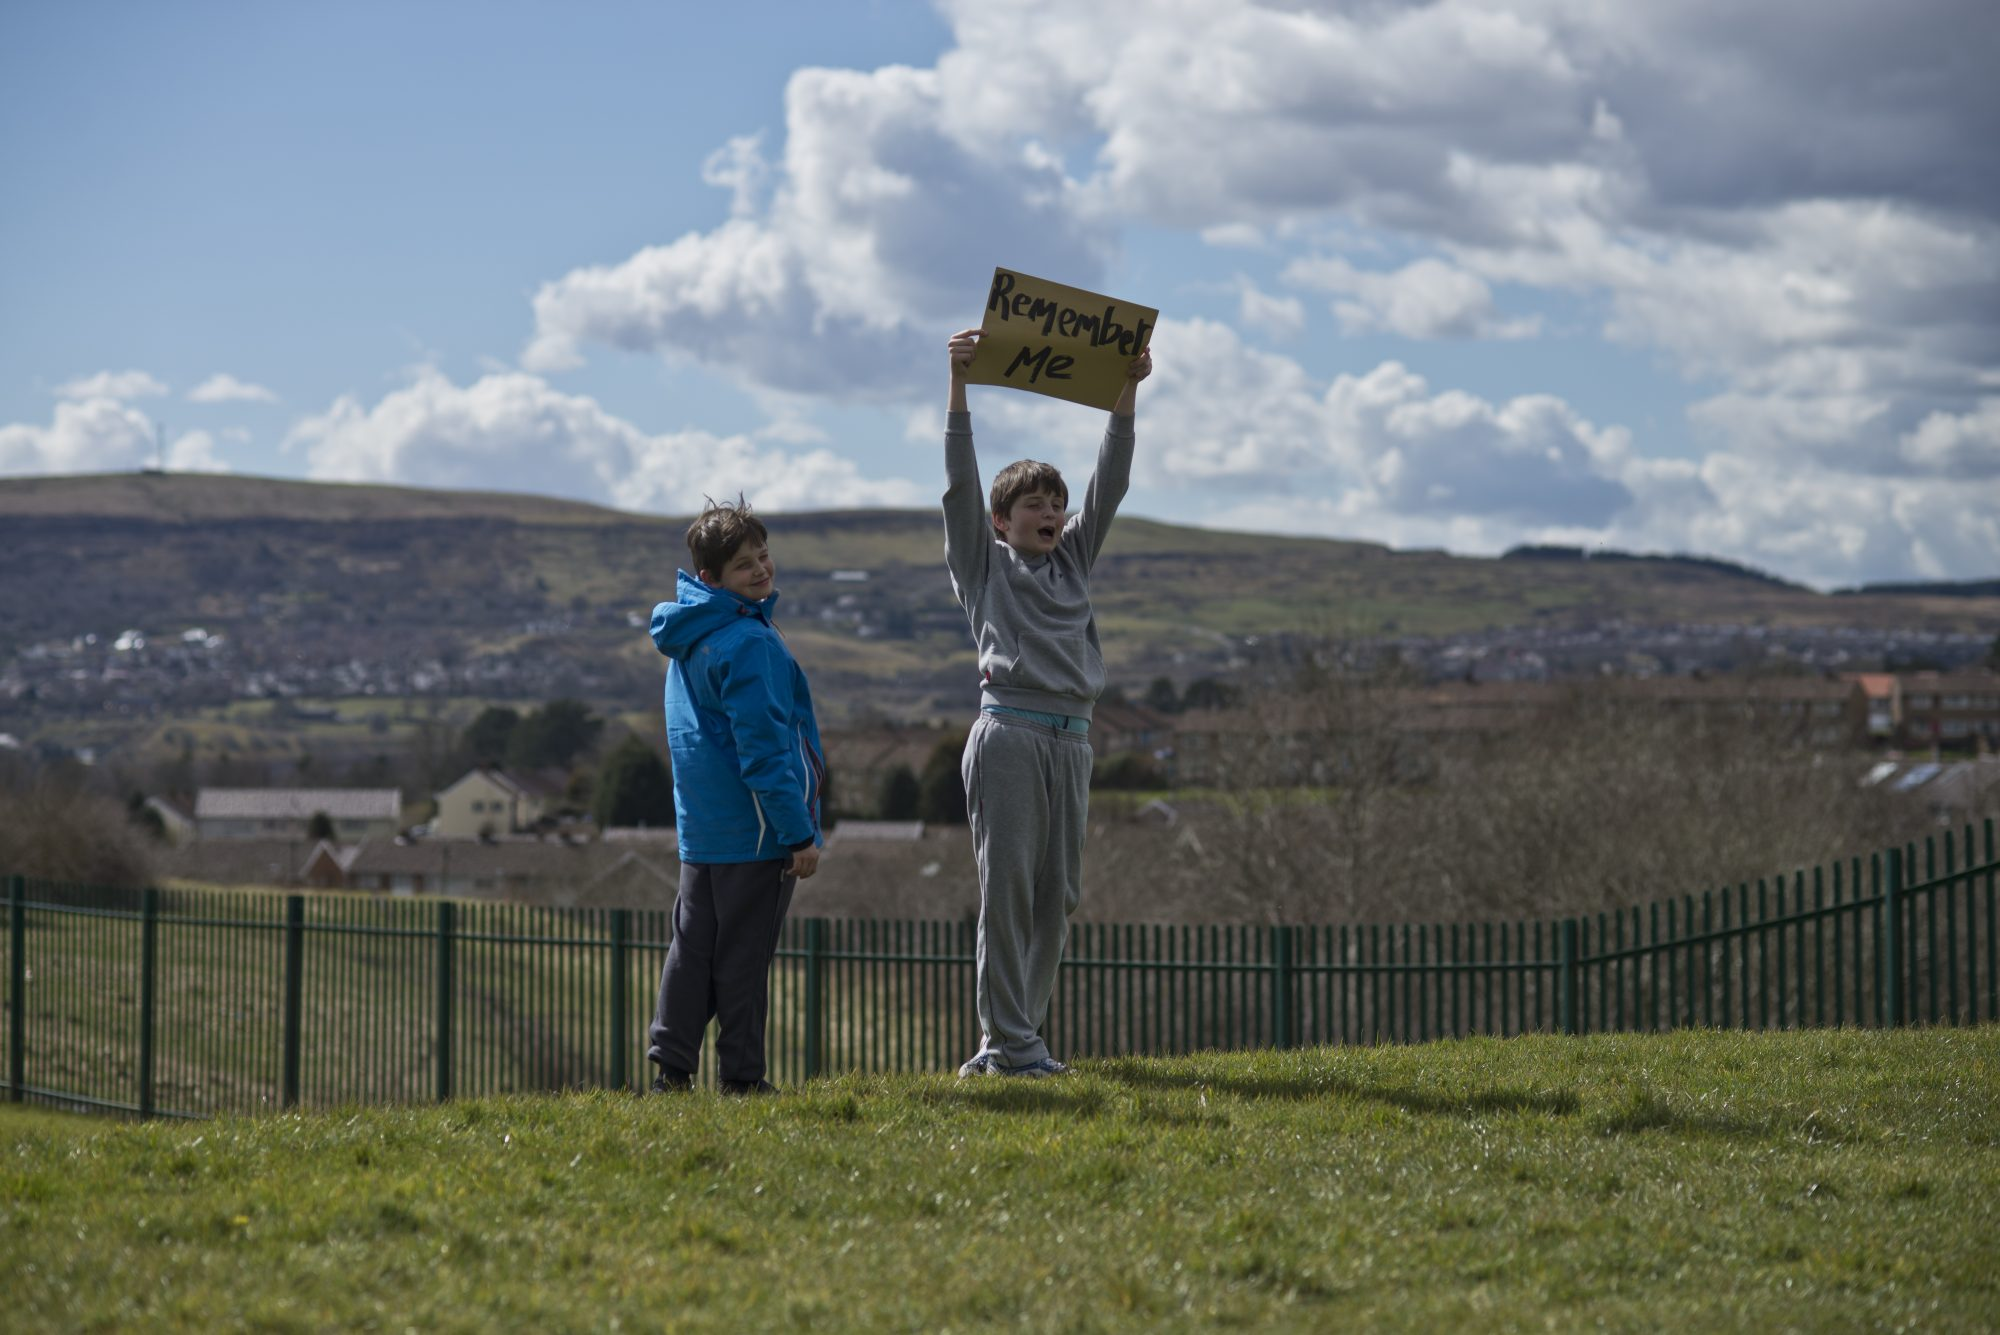 Two people stand on a hill, one holds a sign above his head